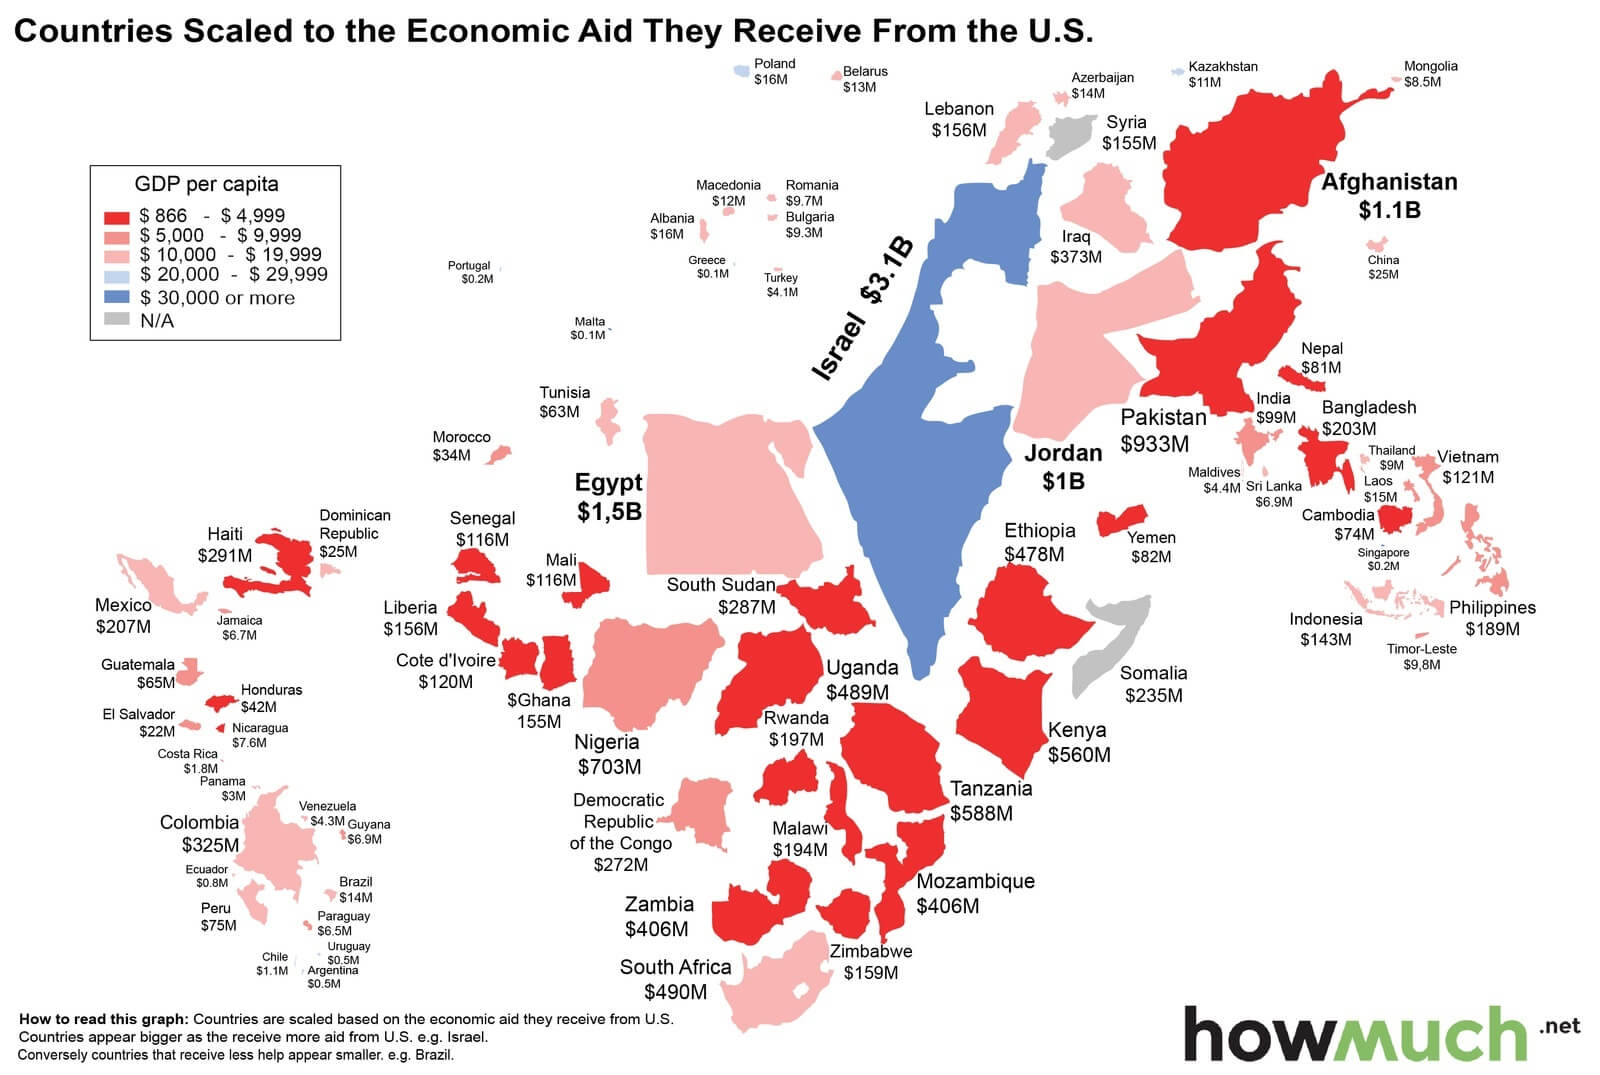 Countries scaled to the economic aid they receive from the U.S. - Graphic: howmuch.net